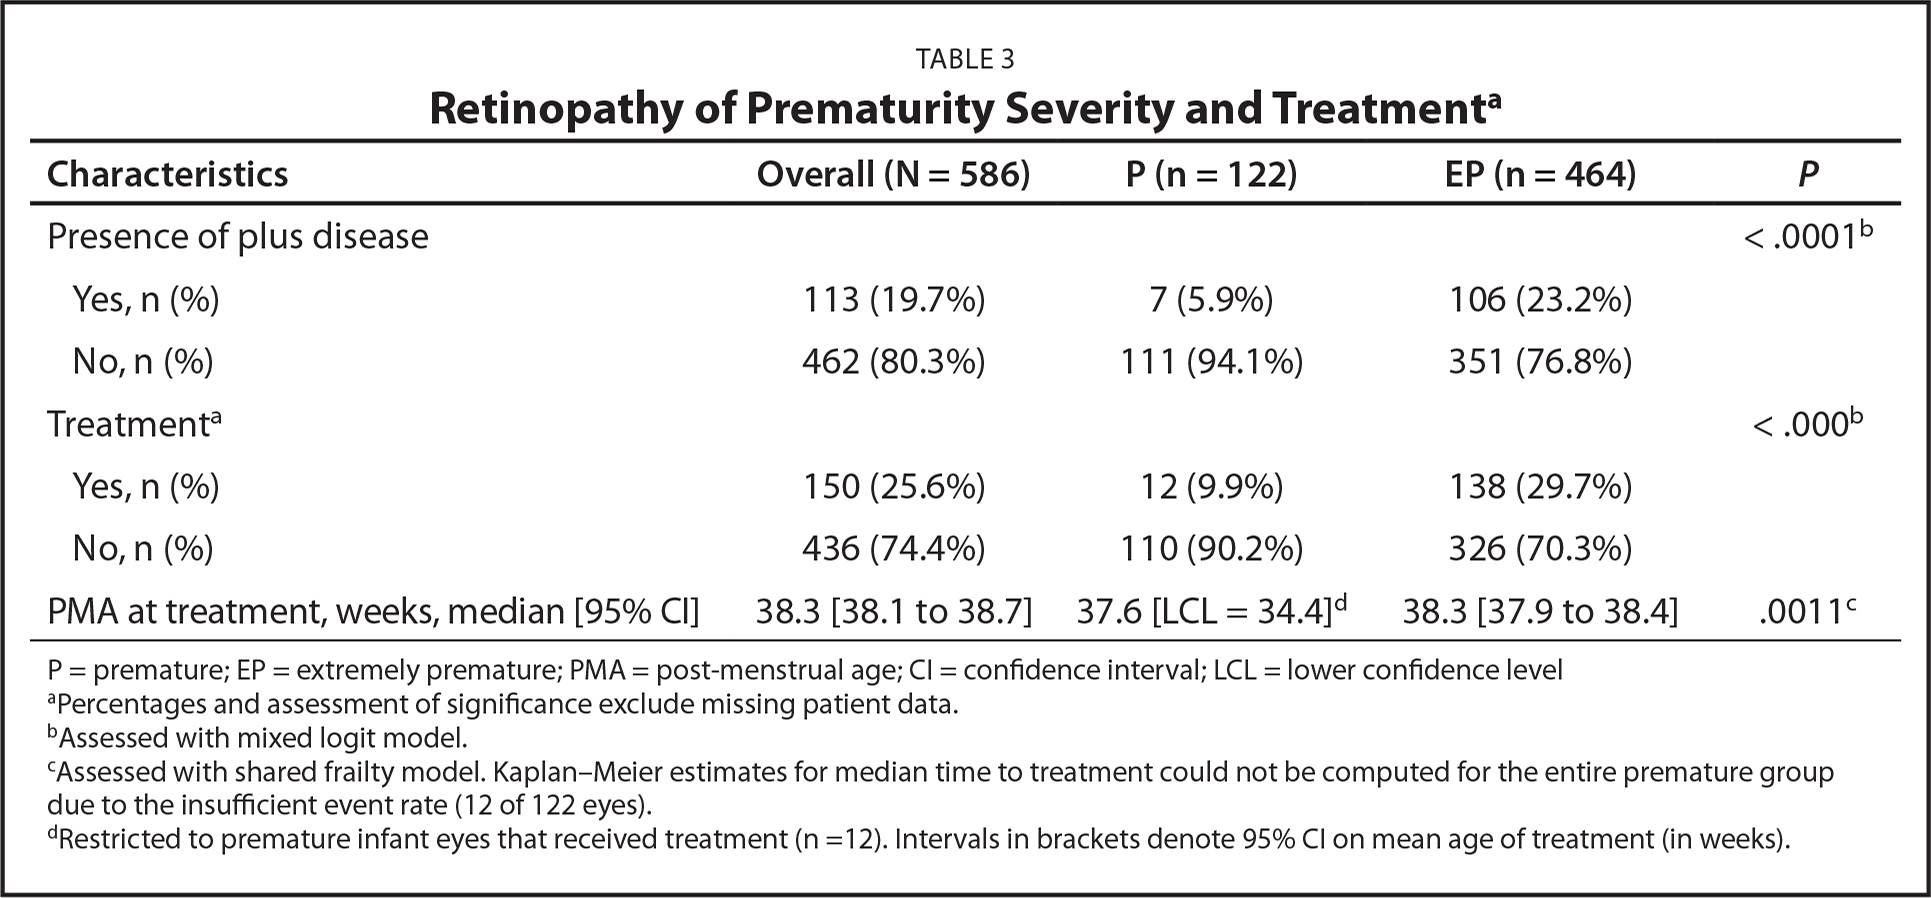 Retinopathy of Prematurity Severity and Treatmenta